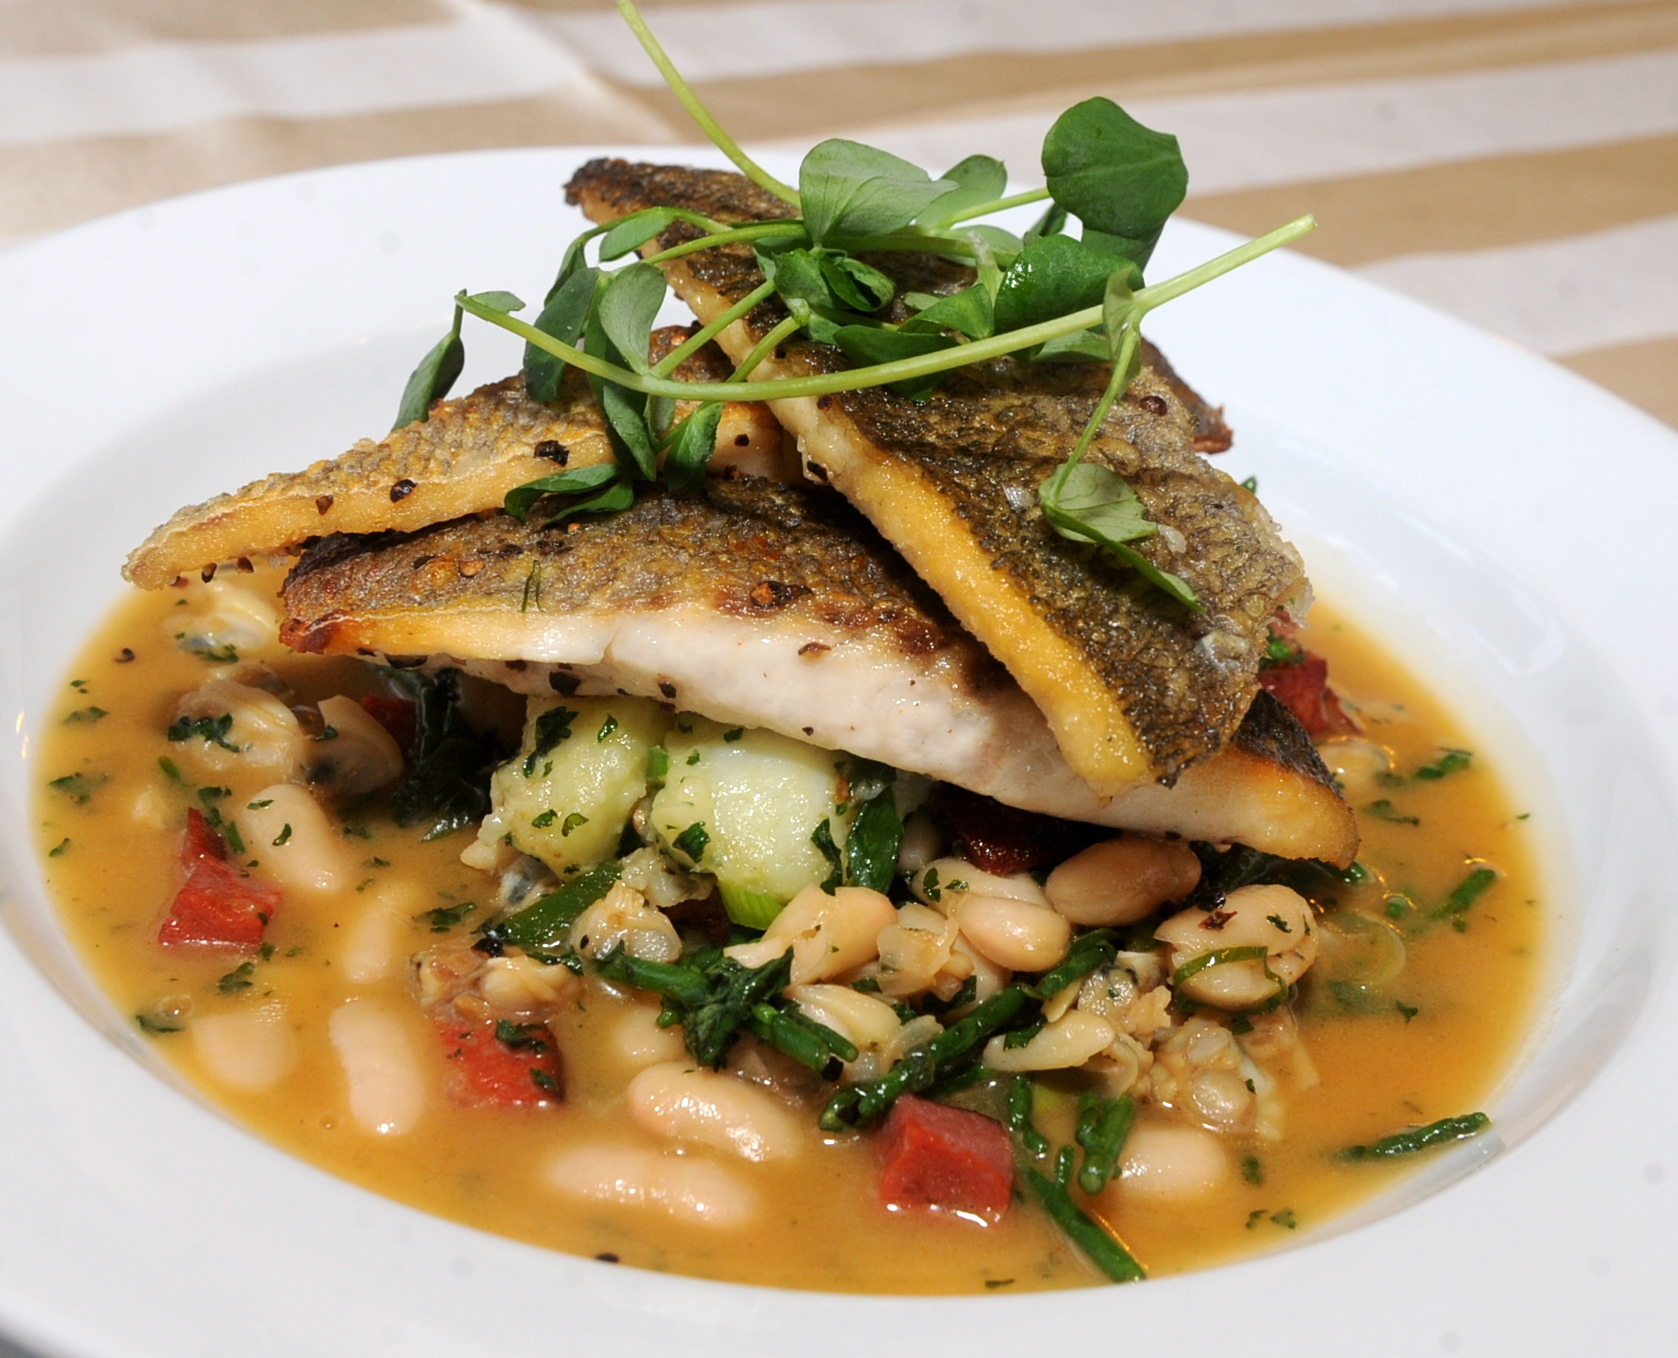 The pan fried seabass was a work of genius